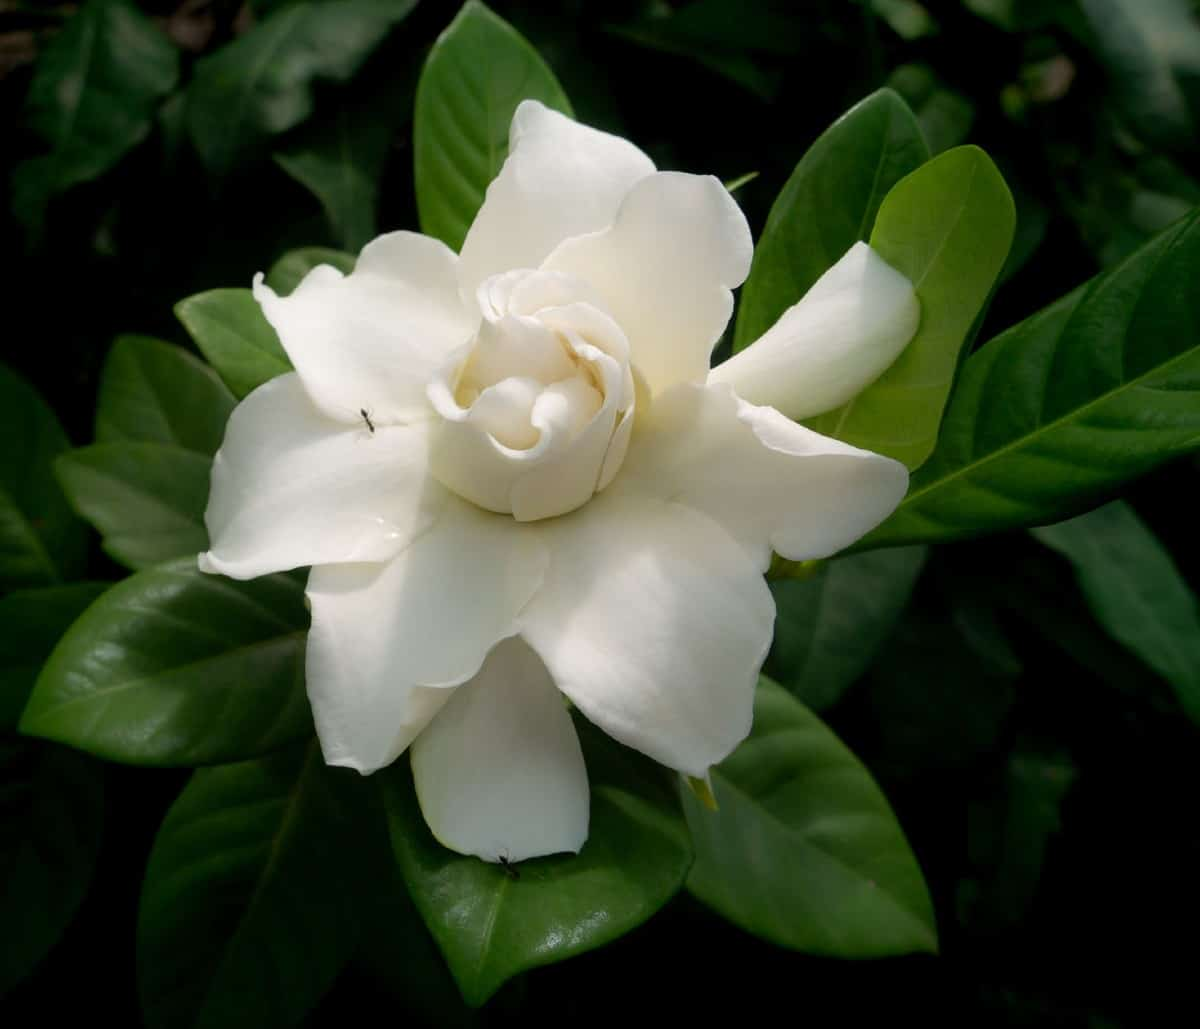 Gardenia shrubs have a strong and pleasant fragrance.